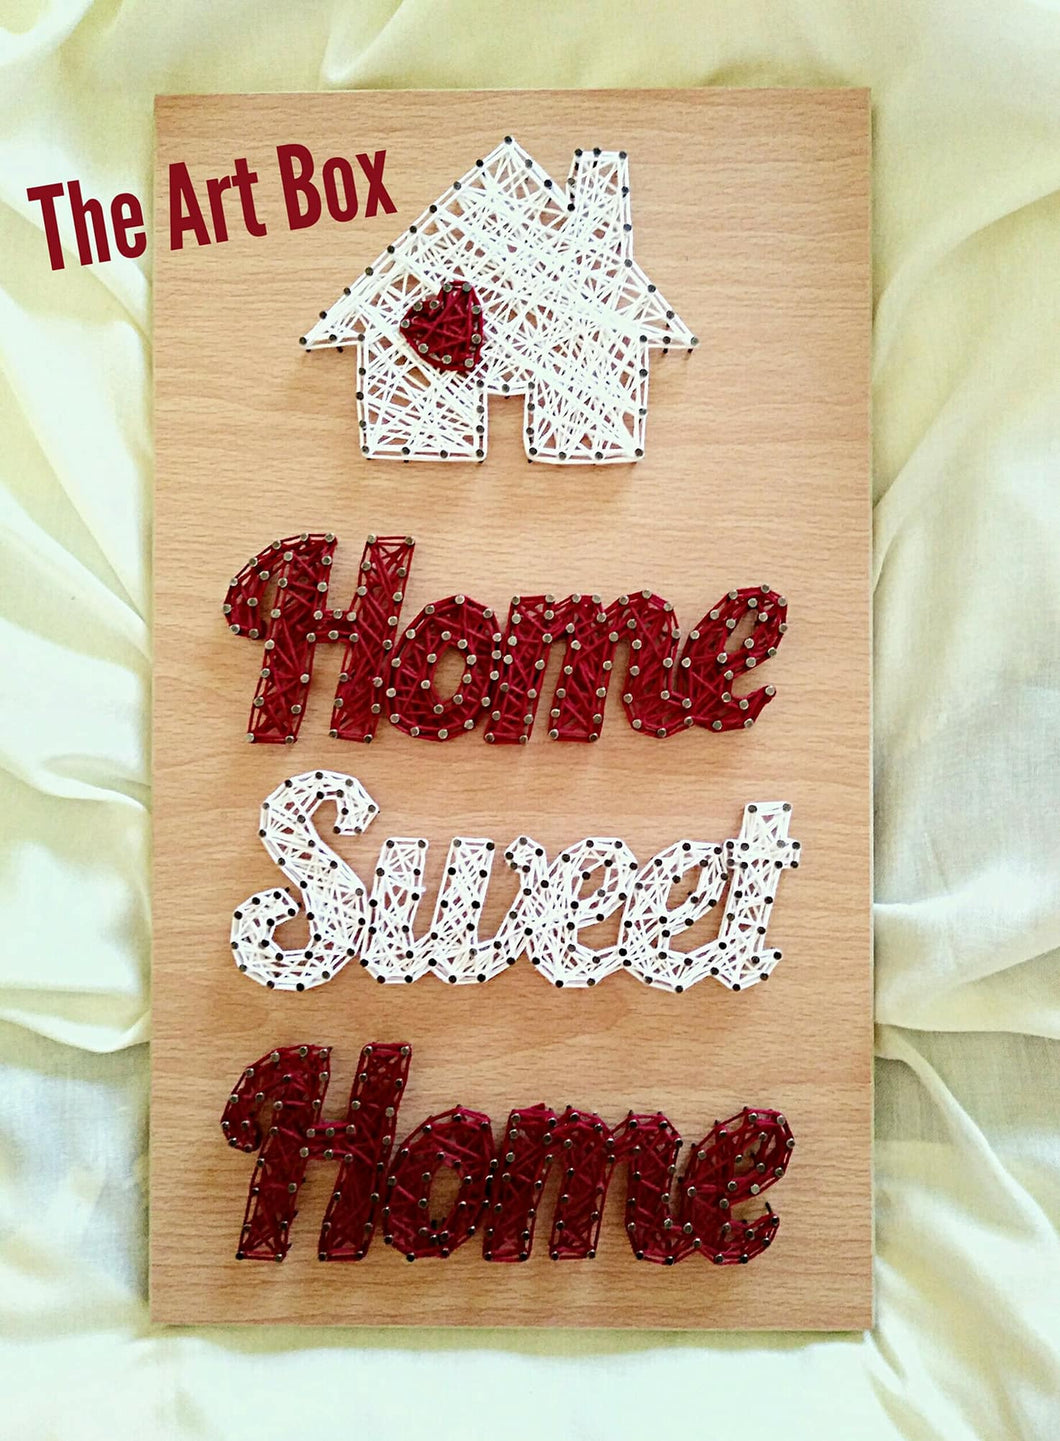 Handmade home sweet home string wall art - Falastini Brand